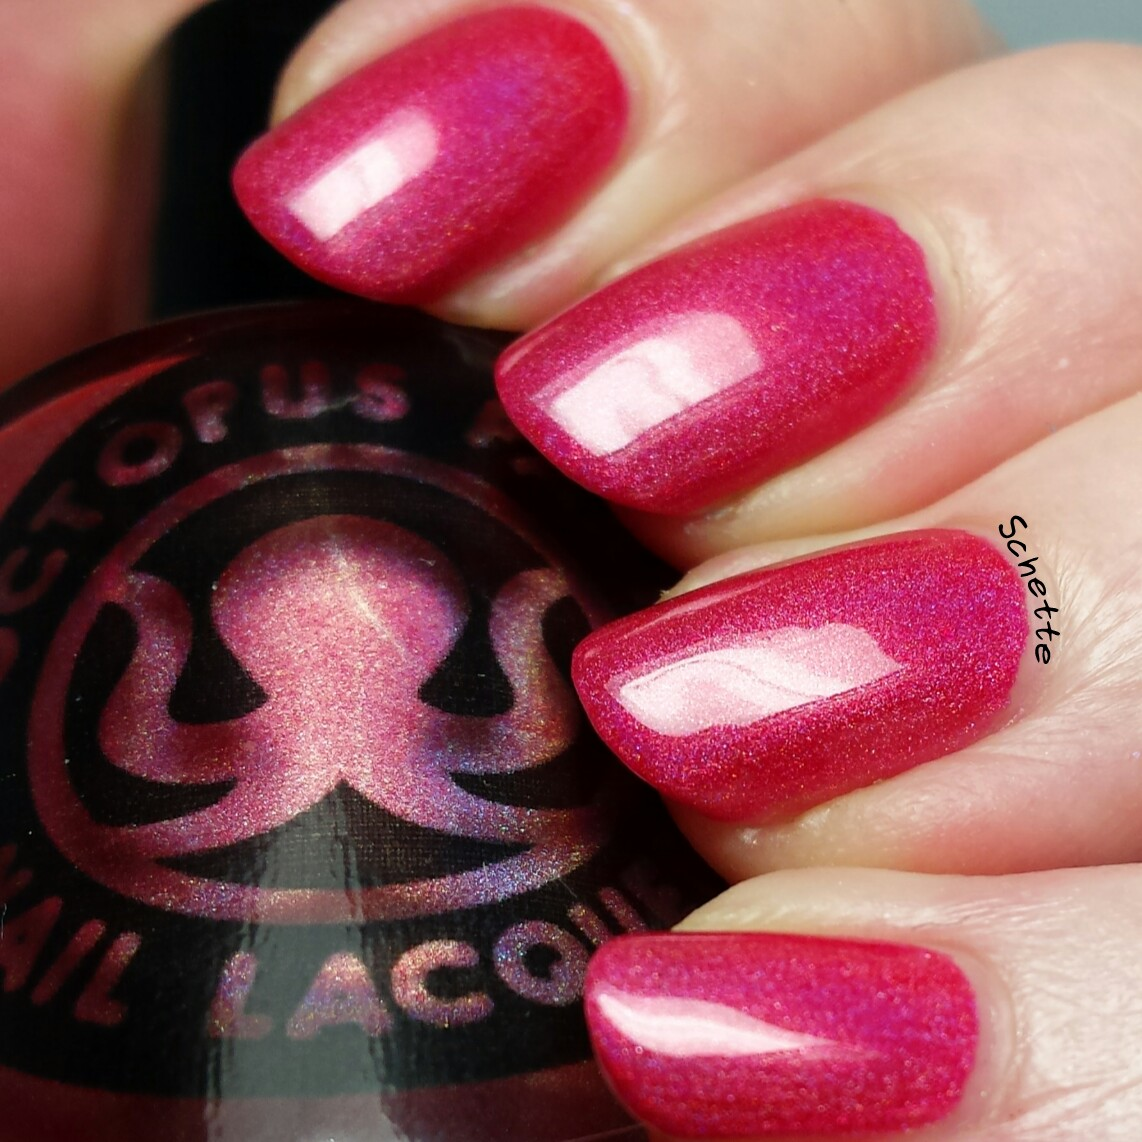 Octopus Lacquer - Bremuda High